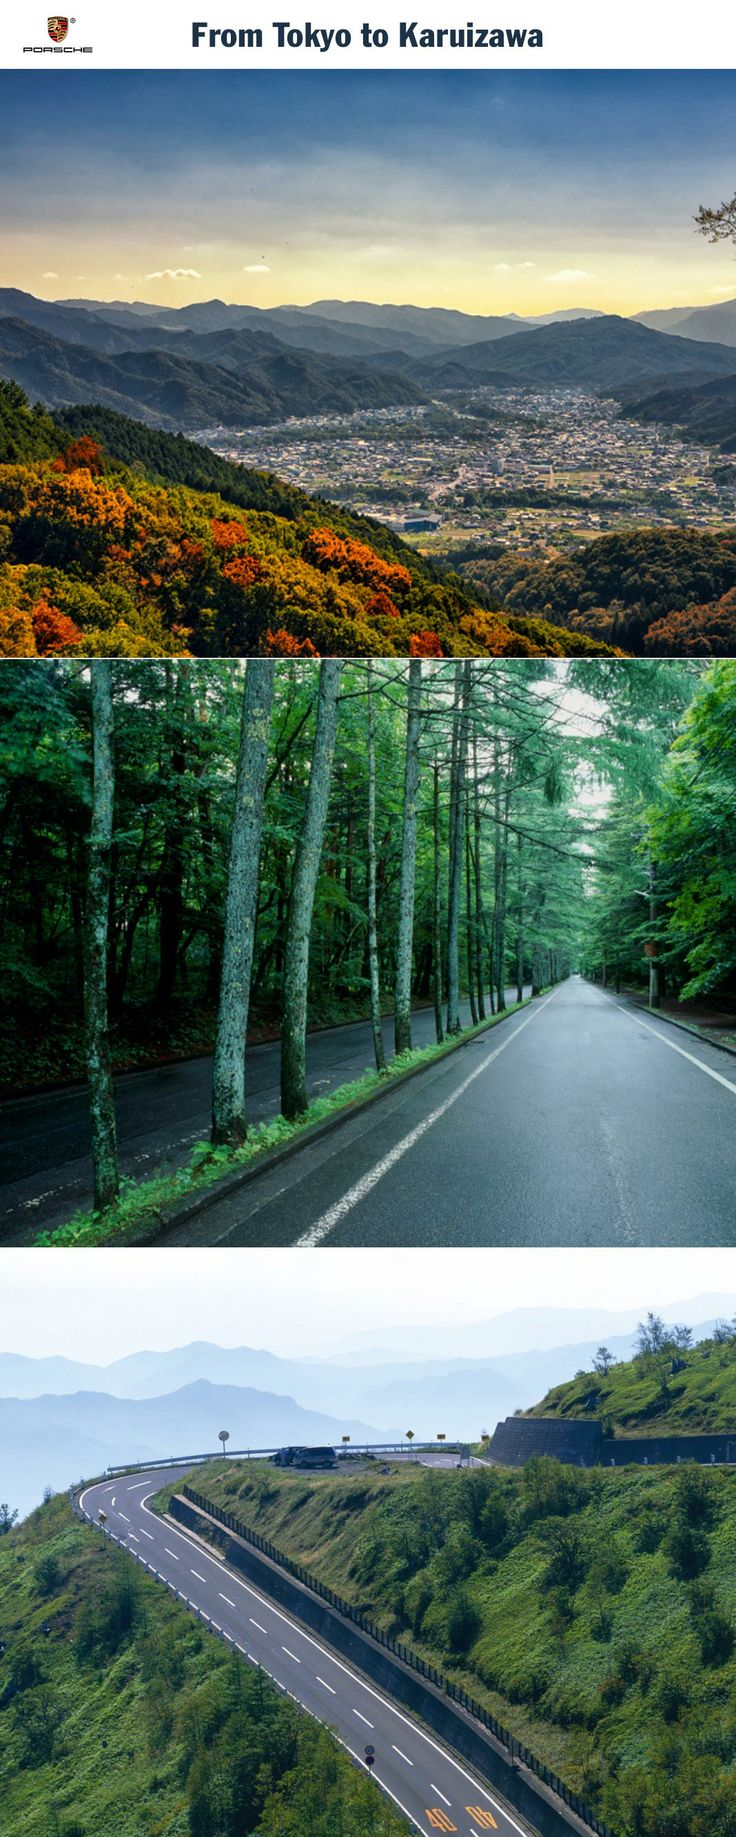 From Tokyo to Karuizawa, Japan. The winding road into the mountainous heart of Japan. Start: Tokyo. Destination: Karuizawa. Driving time: Approx. 5.5 hours. Distance: Approx. 250 km (155 miles). Recommended travel time: April - November.   Learn more: http://link.porsche.com/gts/japan